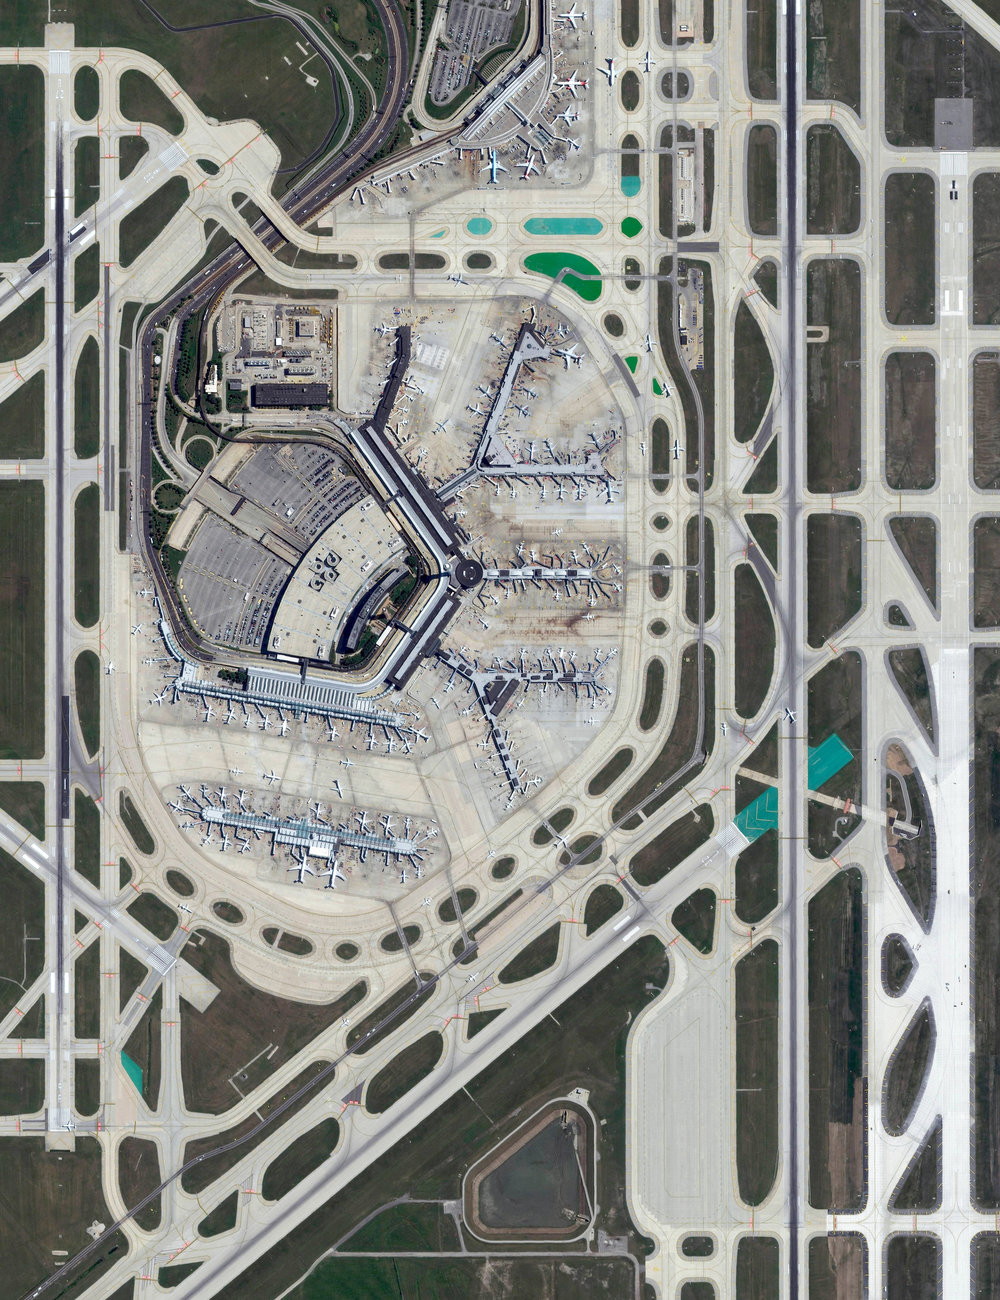 12/23/2016   Chicago O'Hare International Airport   Chicago, Illinois, USA  41°58′43″N 87°54′17″W     Today is expected to the busiest travel day of the year in advance of this weekend's holidays. In the United States alone, more than 103 million people are expected to be travel more than 50 miles this week. Chicago O'Hare International Airport, seen in this Overview, is the fourth-busiest airport in the world and is expected to handle the majority of the ~ 4.5 million people flying to and from Chicago, Illinois this weekend. Whether you are in the air, on the road, or safe at home, I hope you all have a joyous and wonderful holiday!